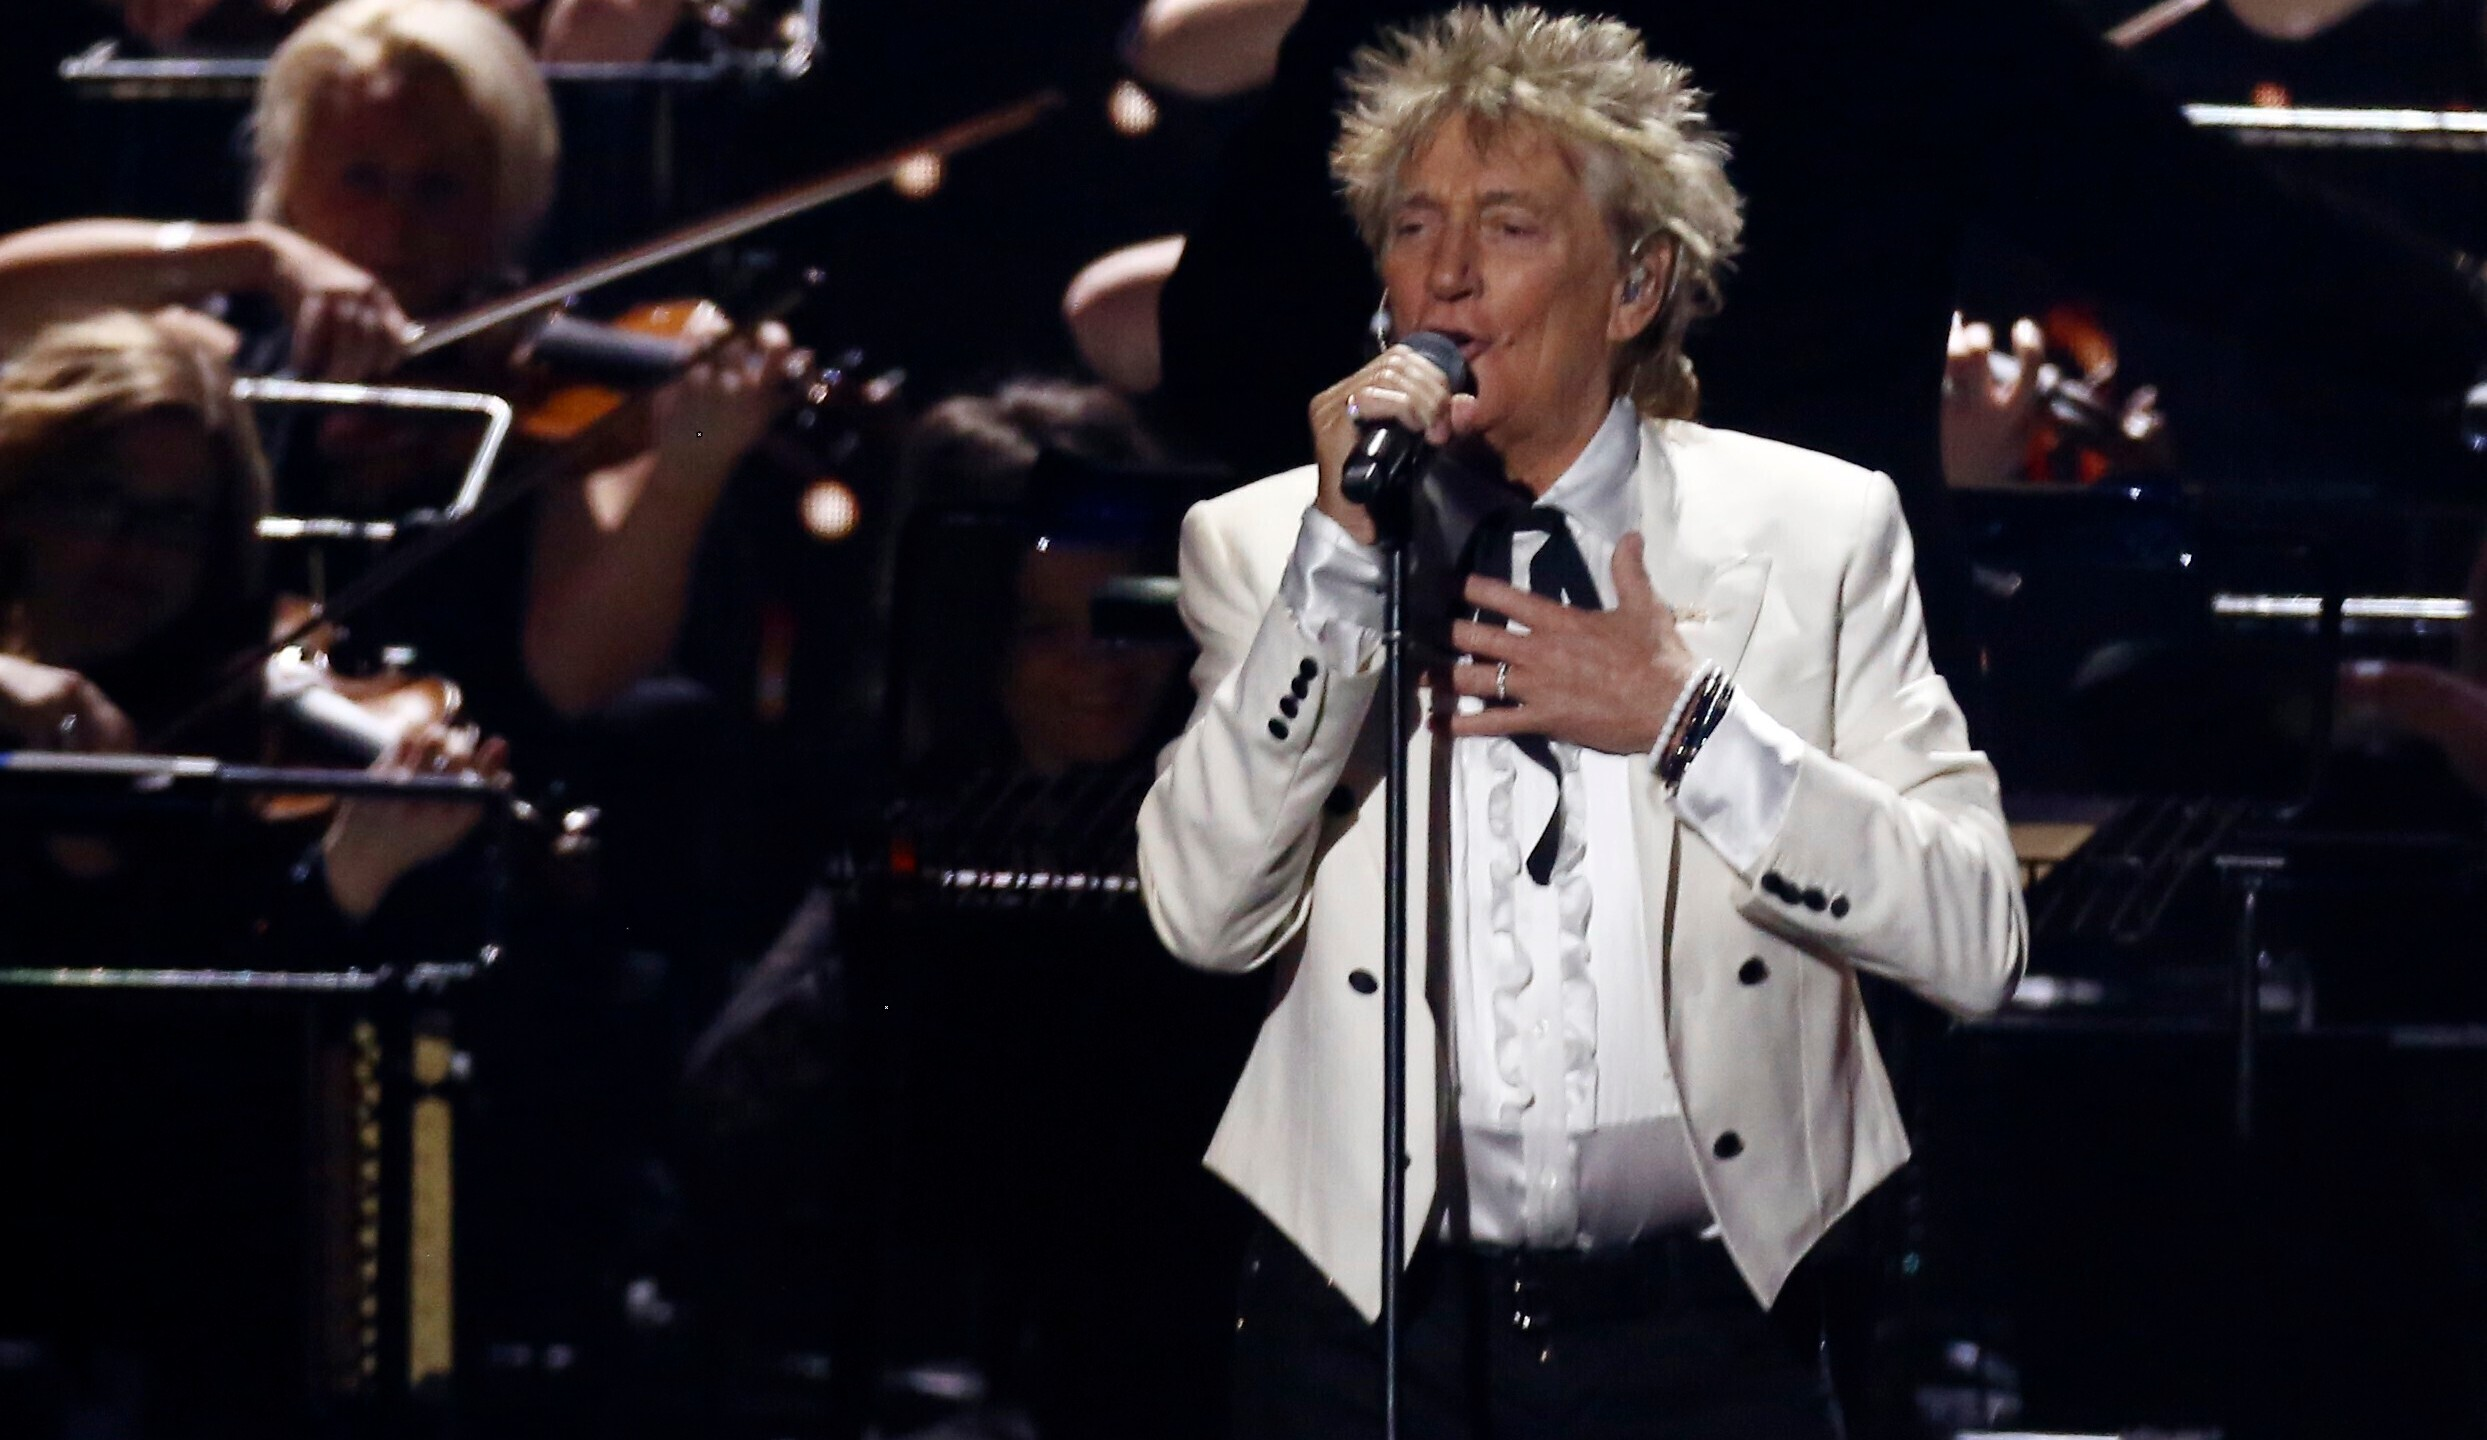 """In this Feb. 18, 2020 file photo, Rod Stewart performs on stage at the Brit Awards 2020 in London. A Florida judge on Thursday, Sept. 9, 2021, has canceled the trial for Stewart and his adult son and scheduled a hearing next month to discuss a plea deal to resolve misdemeanor charges. The singer of 70s hits such as """"Da Ya Think I'm Sexy?"""" and """"Maggie May"""" and his son are accused of pushing and shoving a security guard at an upscale hotel because he wouldn't let them into a New Year's Eve party nearly two years ago. (Joel C Ryan/Invision/AP)"""